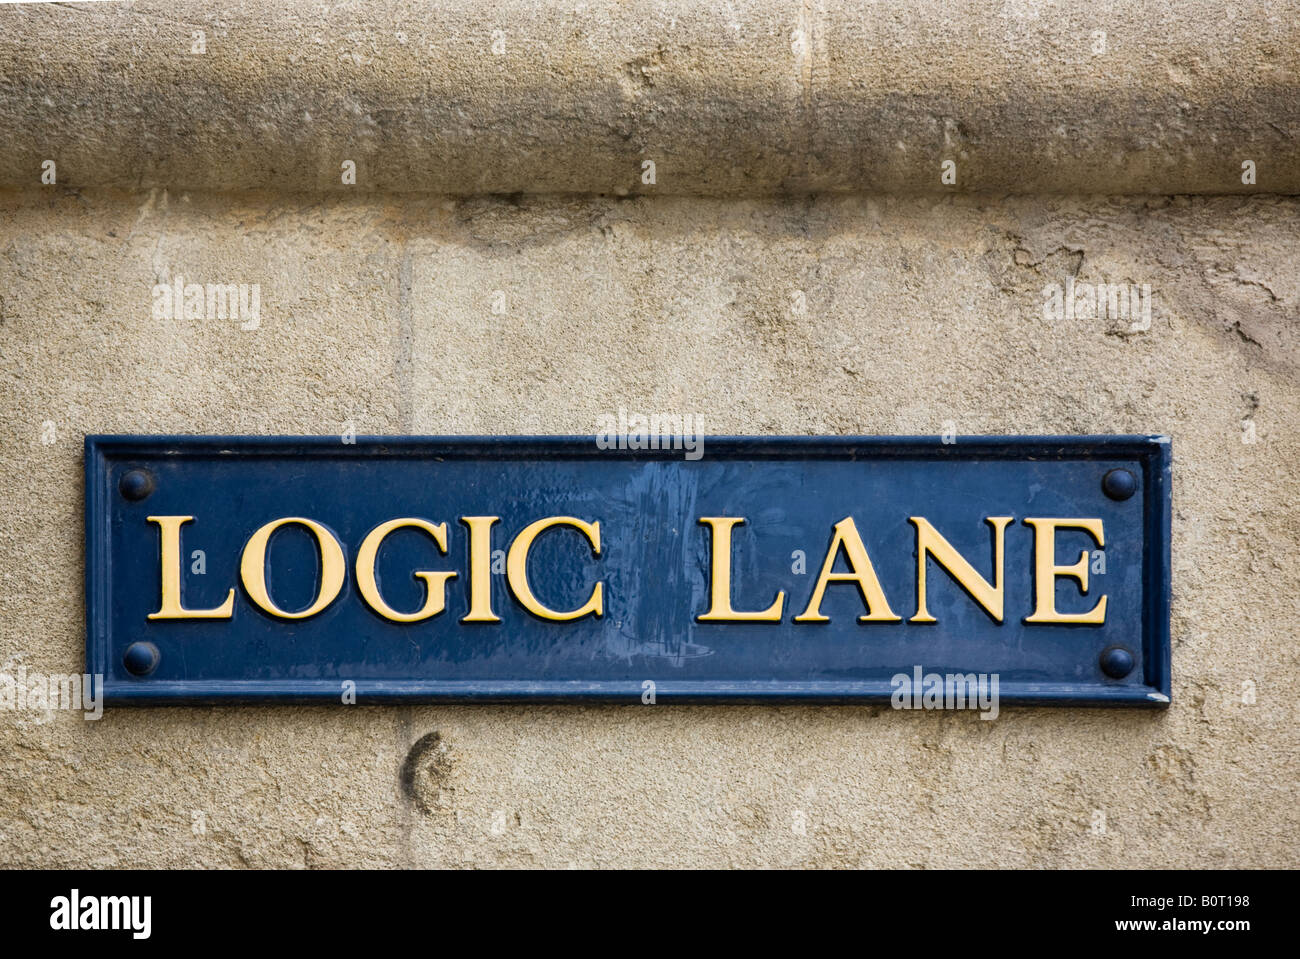 Logic Lane by University College and the High Street Oxford Oxfordshire England UK - Stock Image